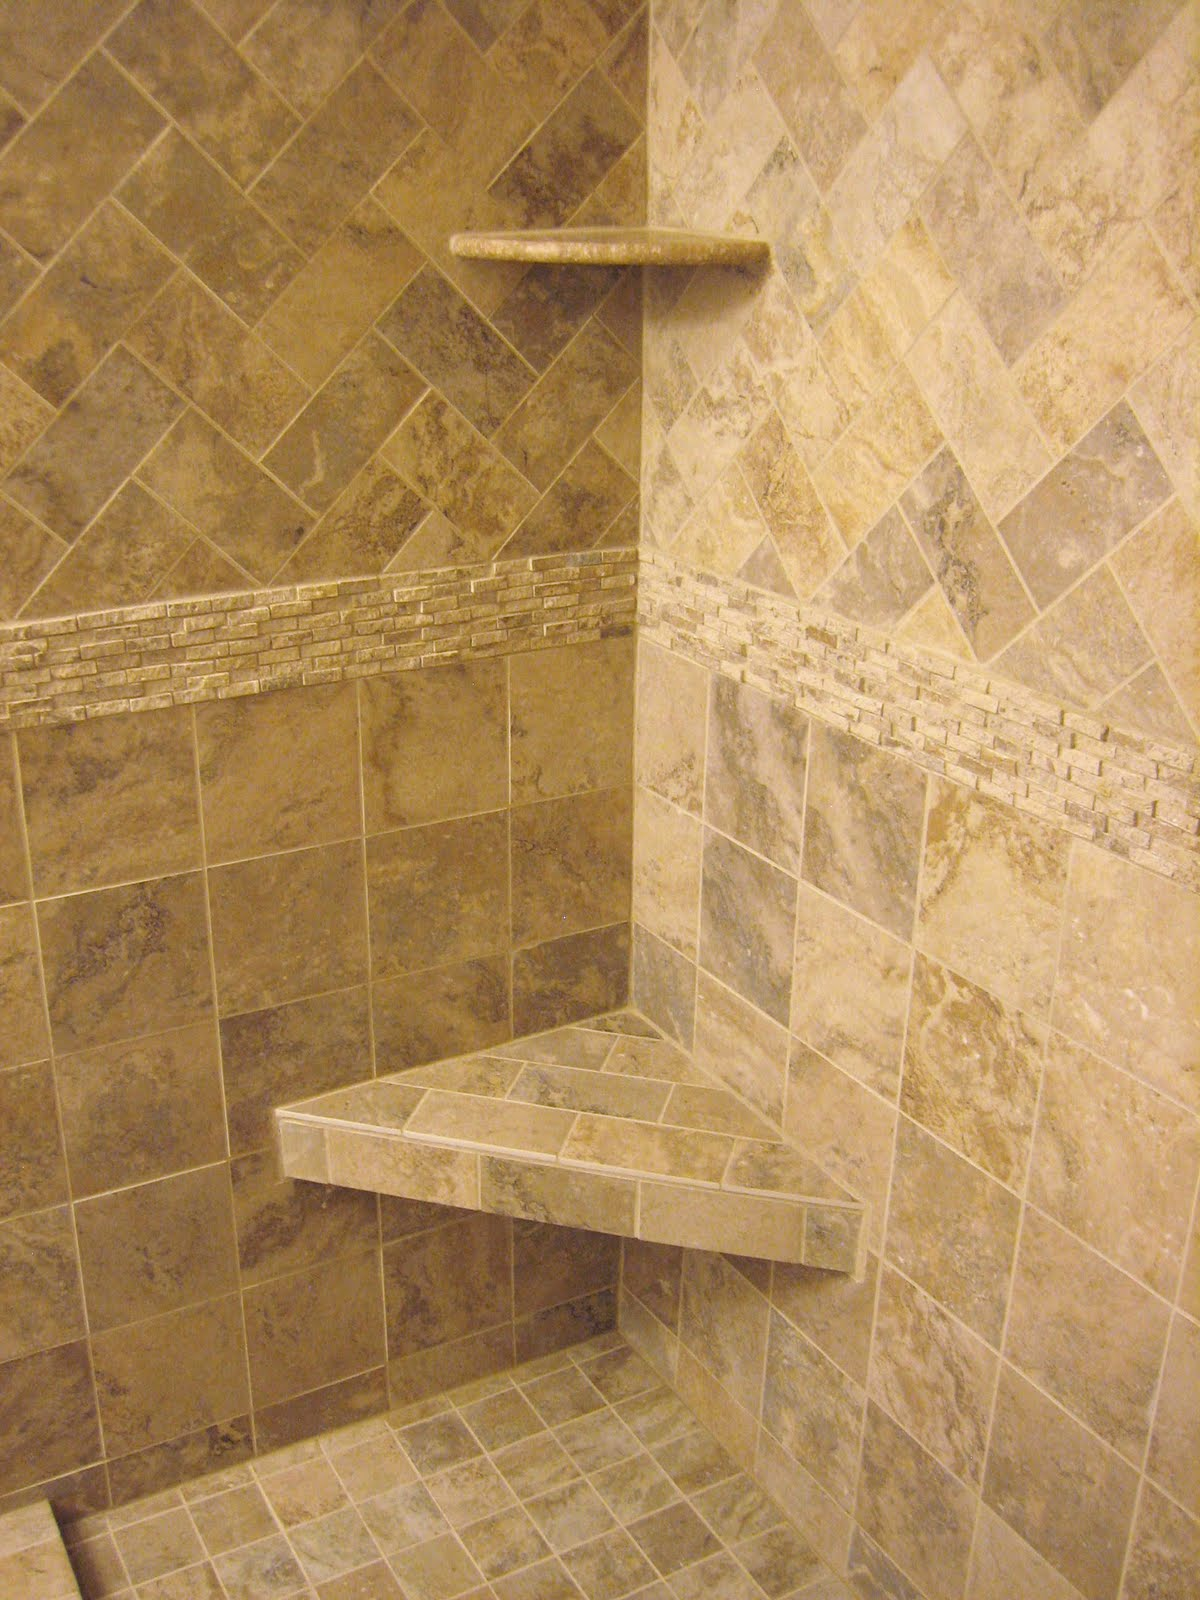 H winter showroom blog luxury master bath remodel athena for Bathroom tile designs gallery